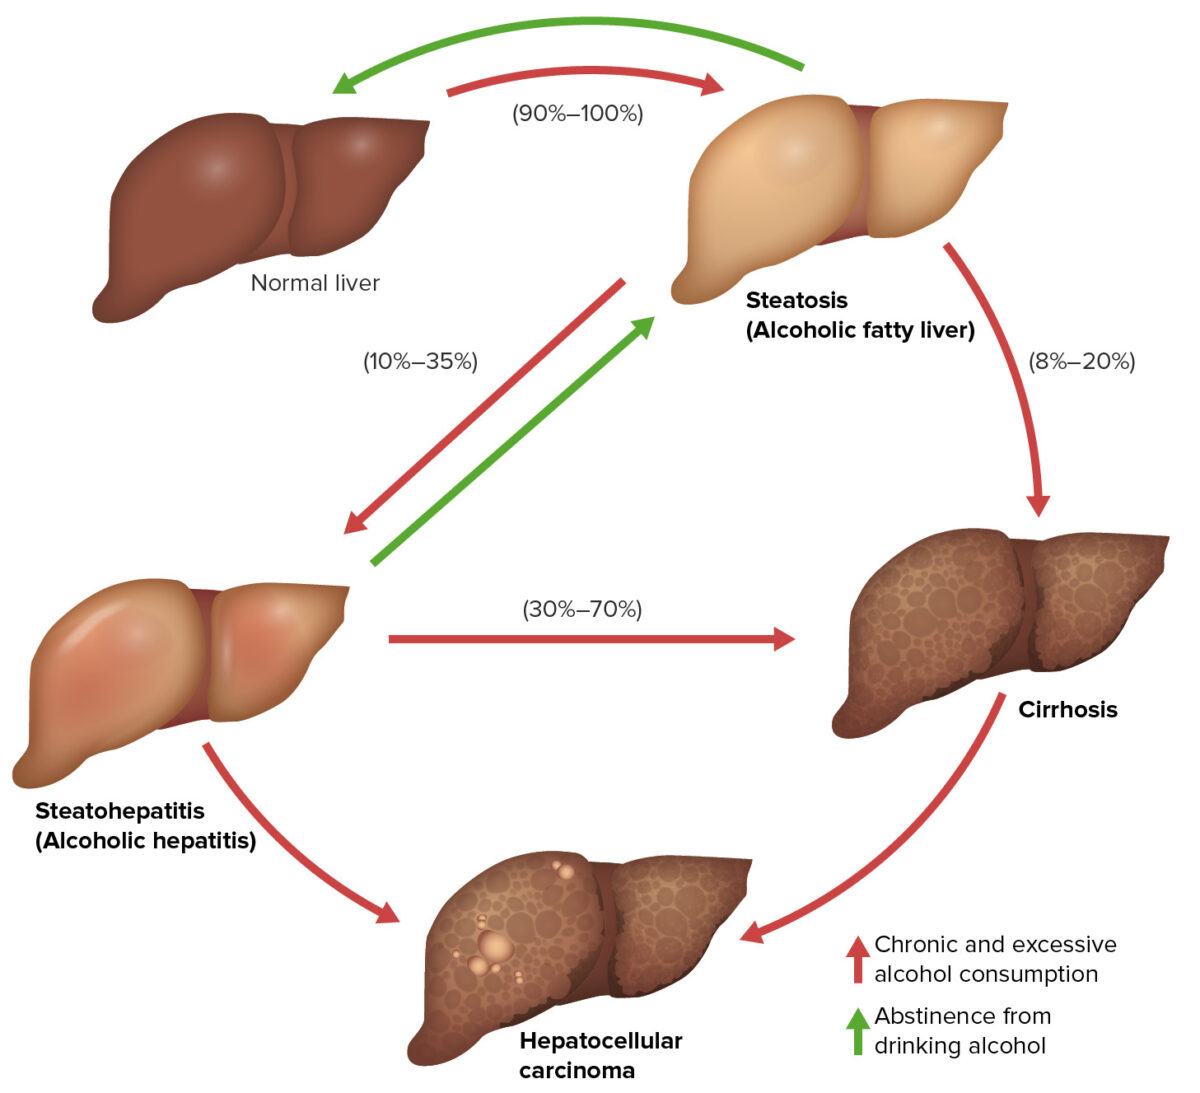 Three stages of alcoholic liver disease